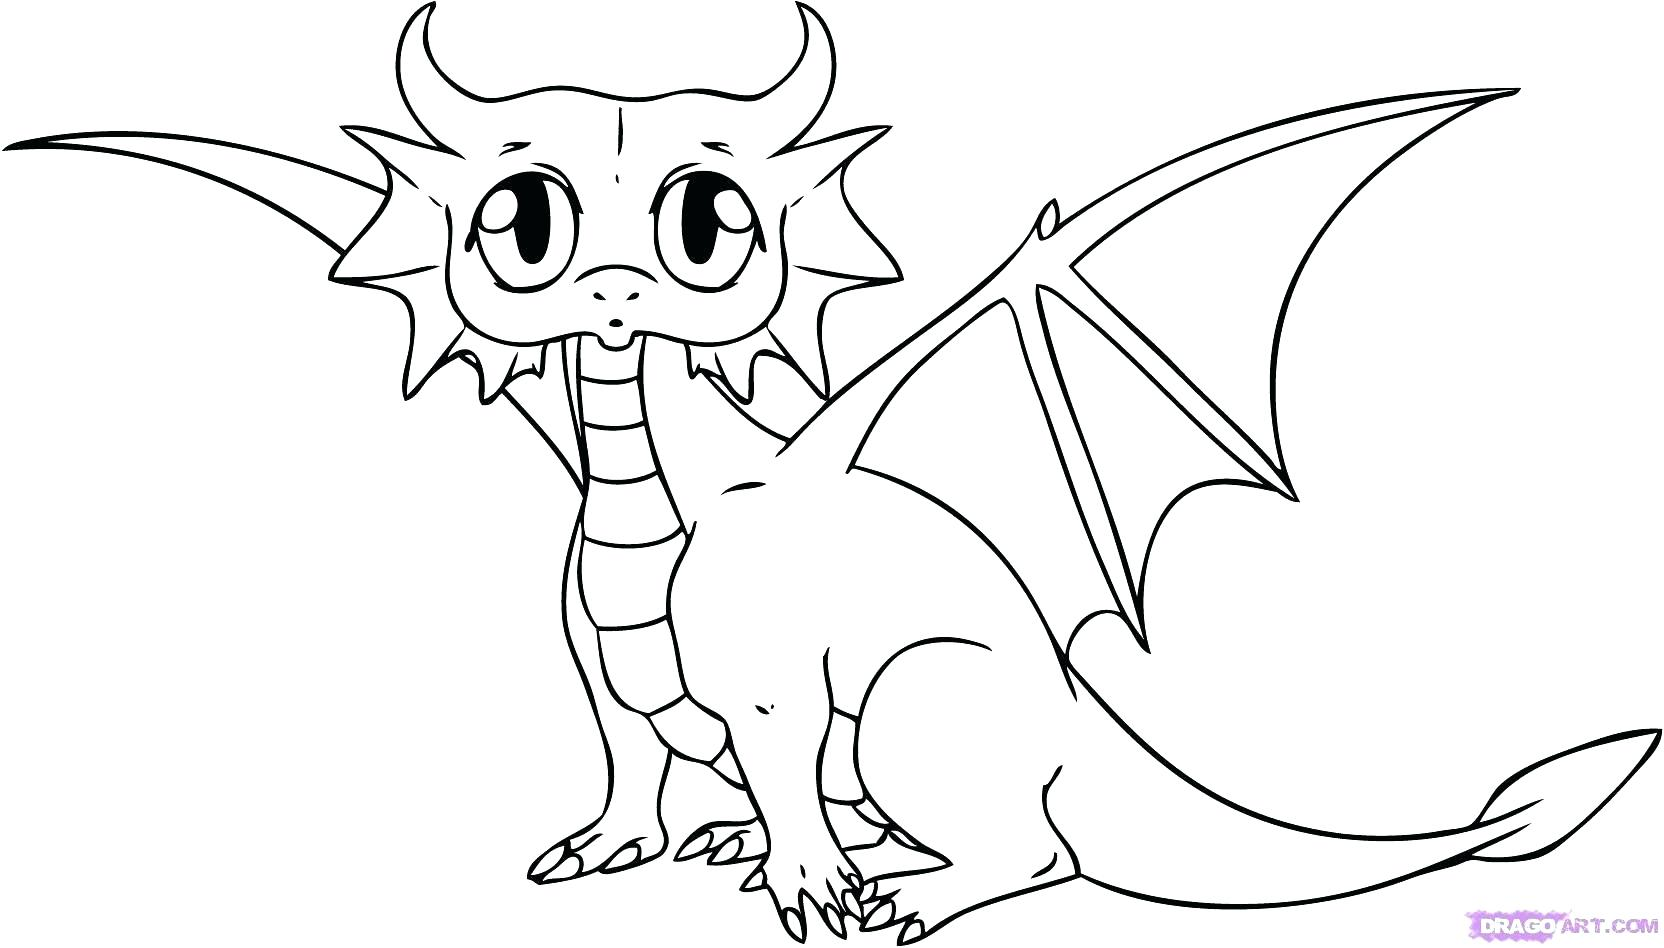 Dragon Coloring Pages For Kids At Getdrawings Com Free For